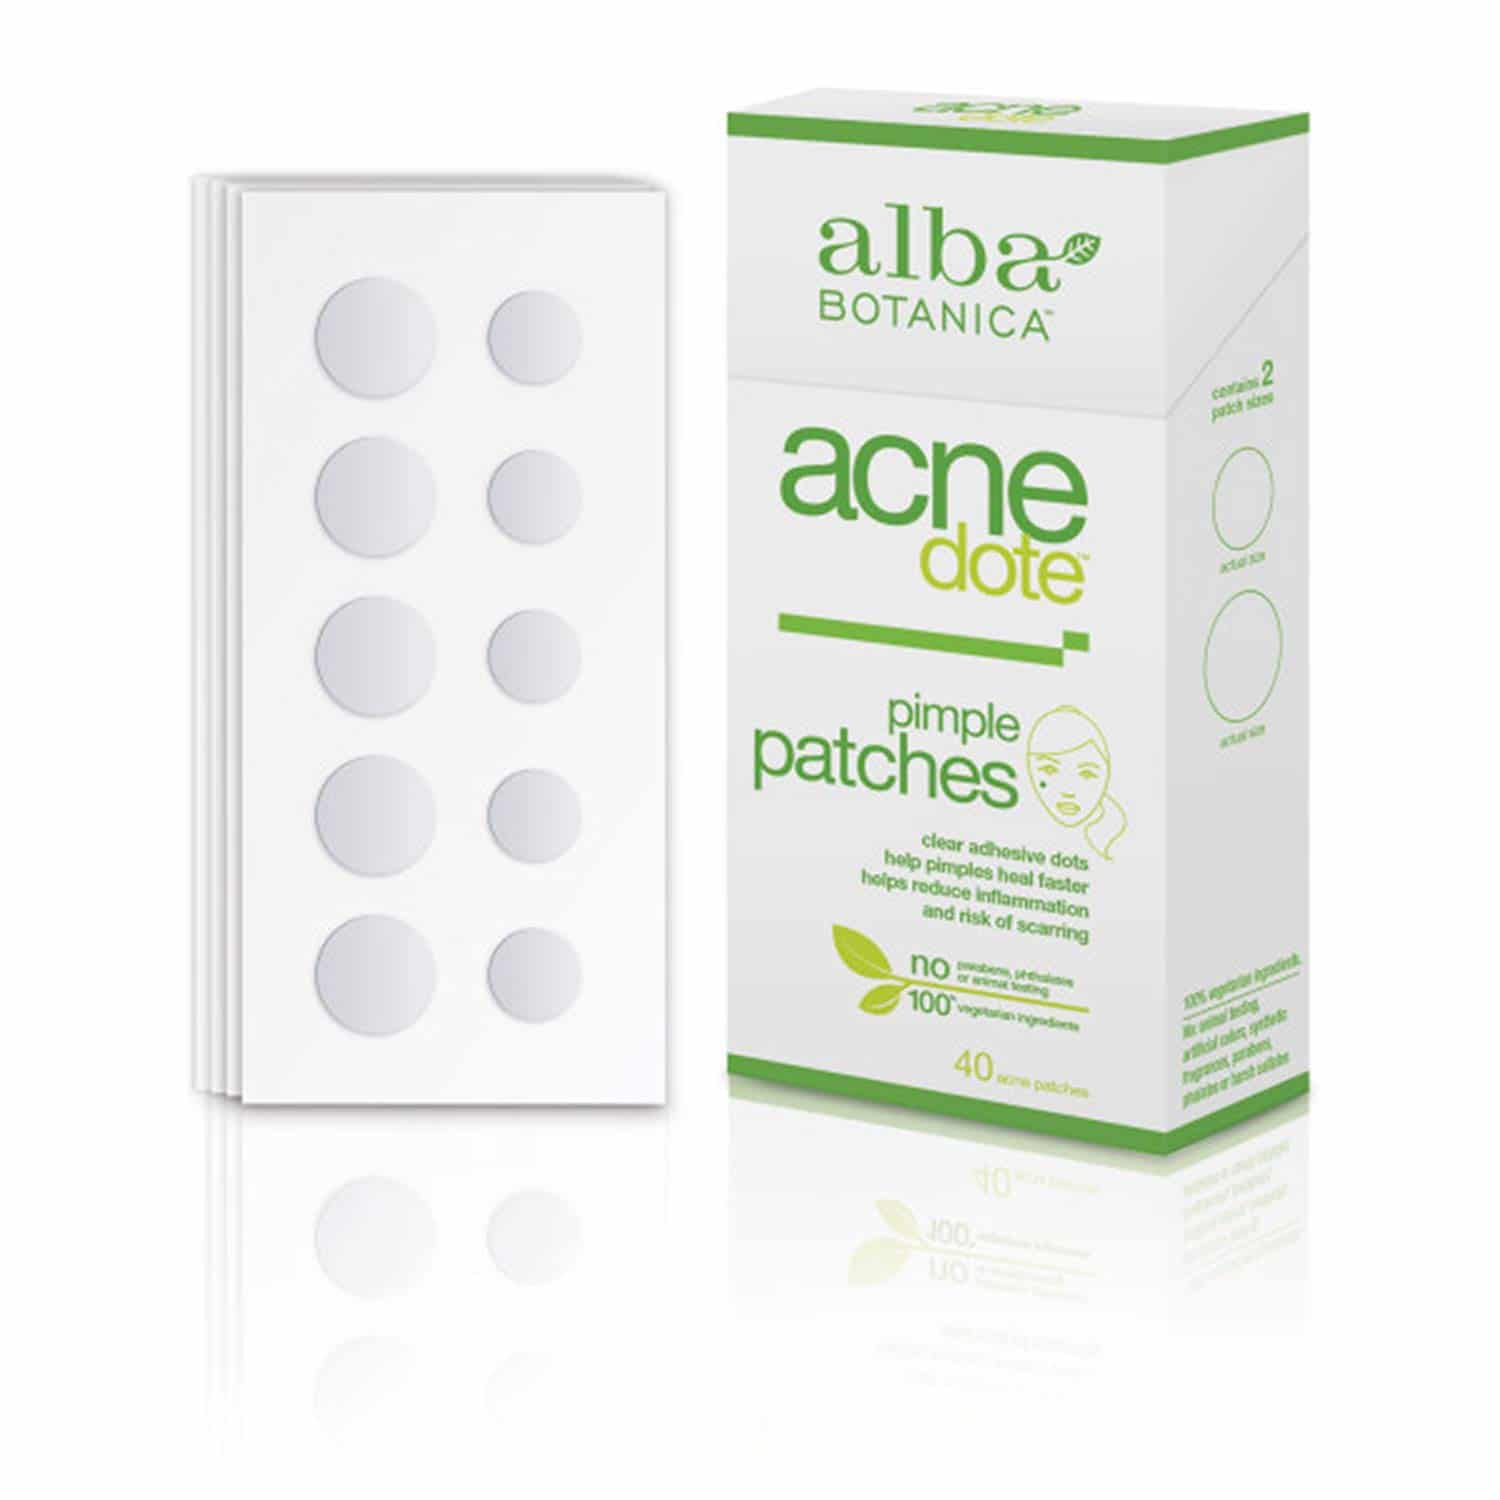 Hydrocolloid Patches Amazon